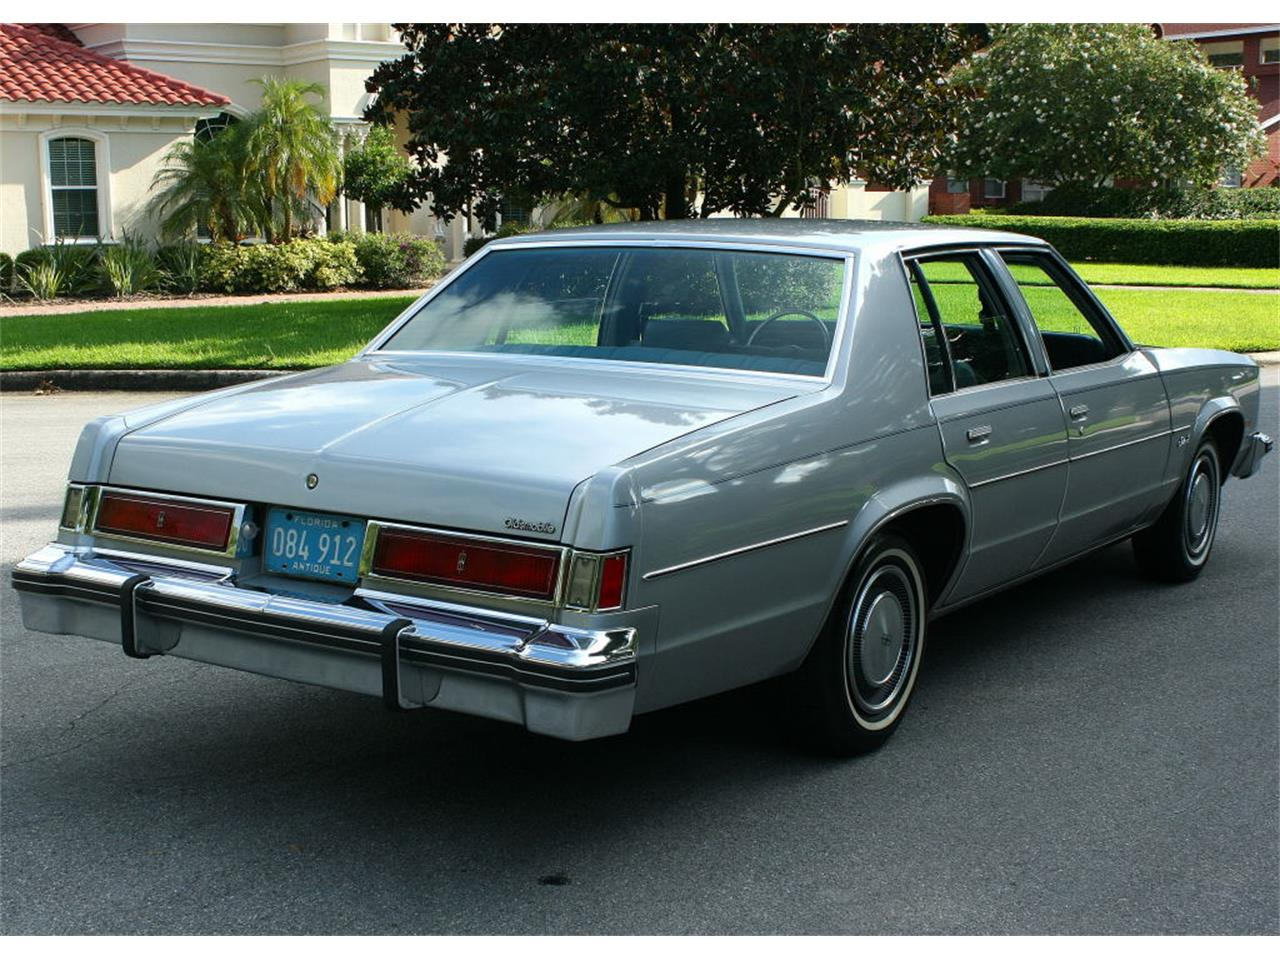 Large Picture of 1977 Oldsmobile Delta 88 - $12,500.00 - LFEK